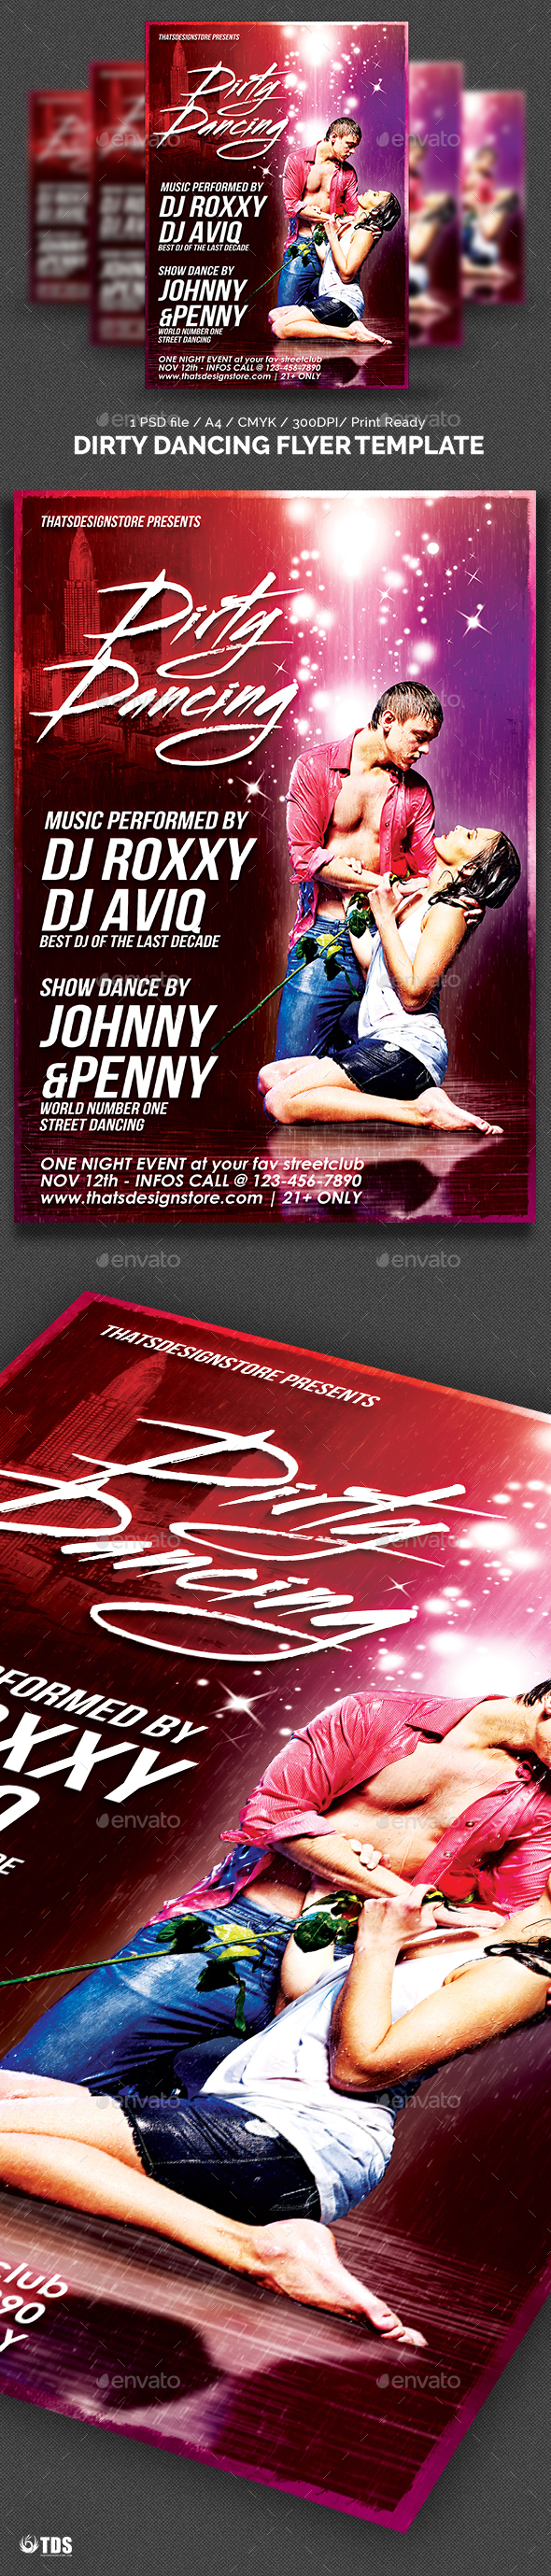 Dirty Dancing Flyer Template - Clubs & Parties Events